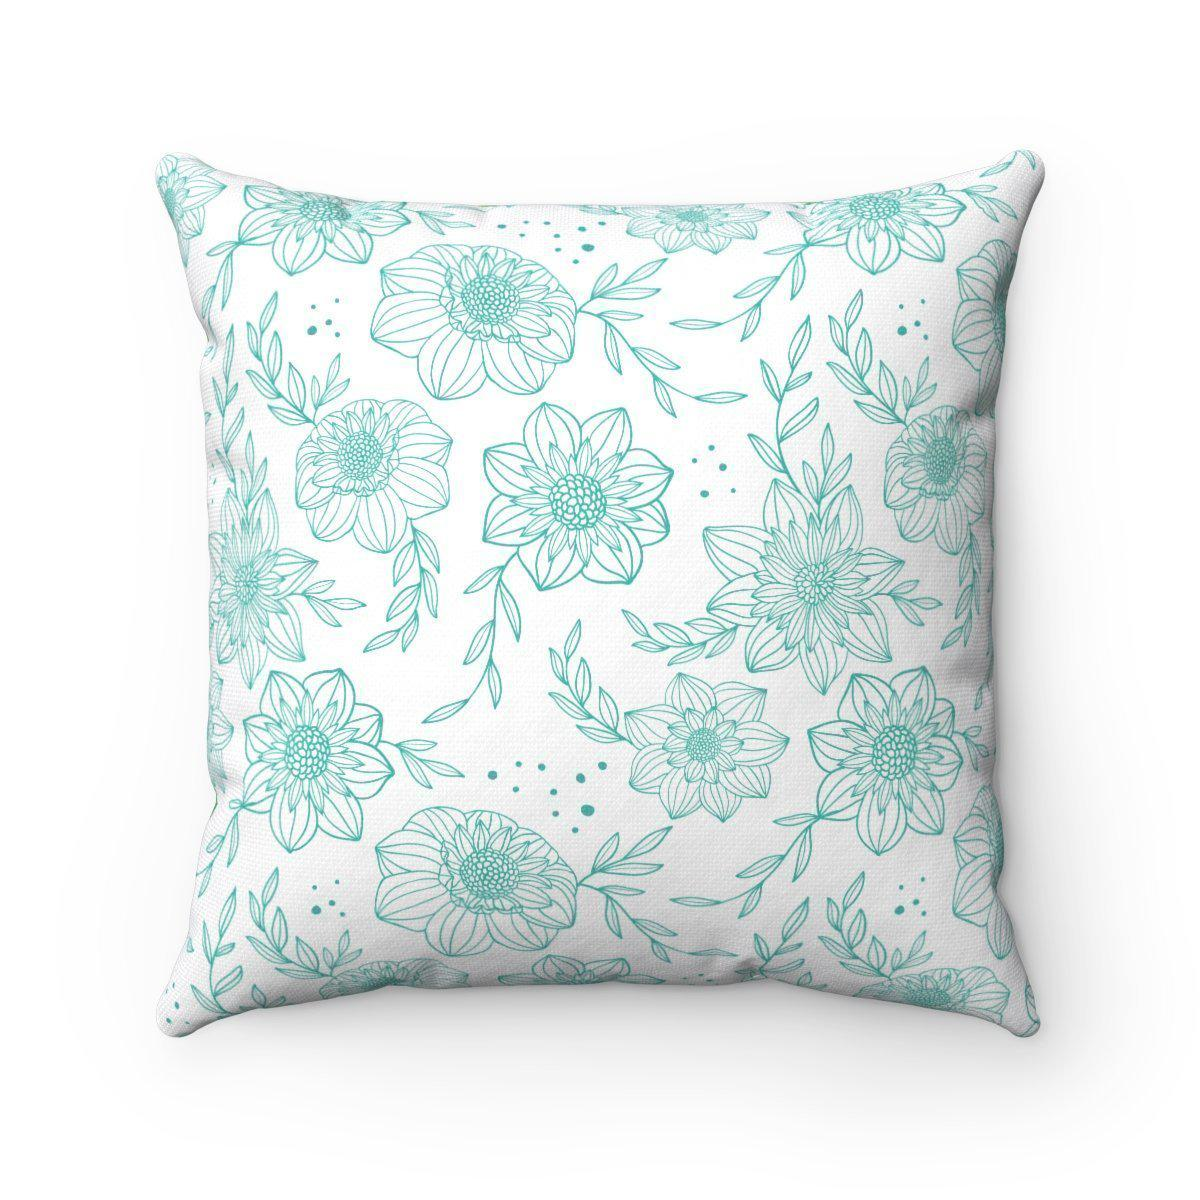 Garden Double sided modern decorative cushion cover-Home Decor - Decorative Accents - Pillows & Throws - Decorative Pillows-Maison d'Elite-14x14-Très Elite